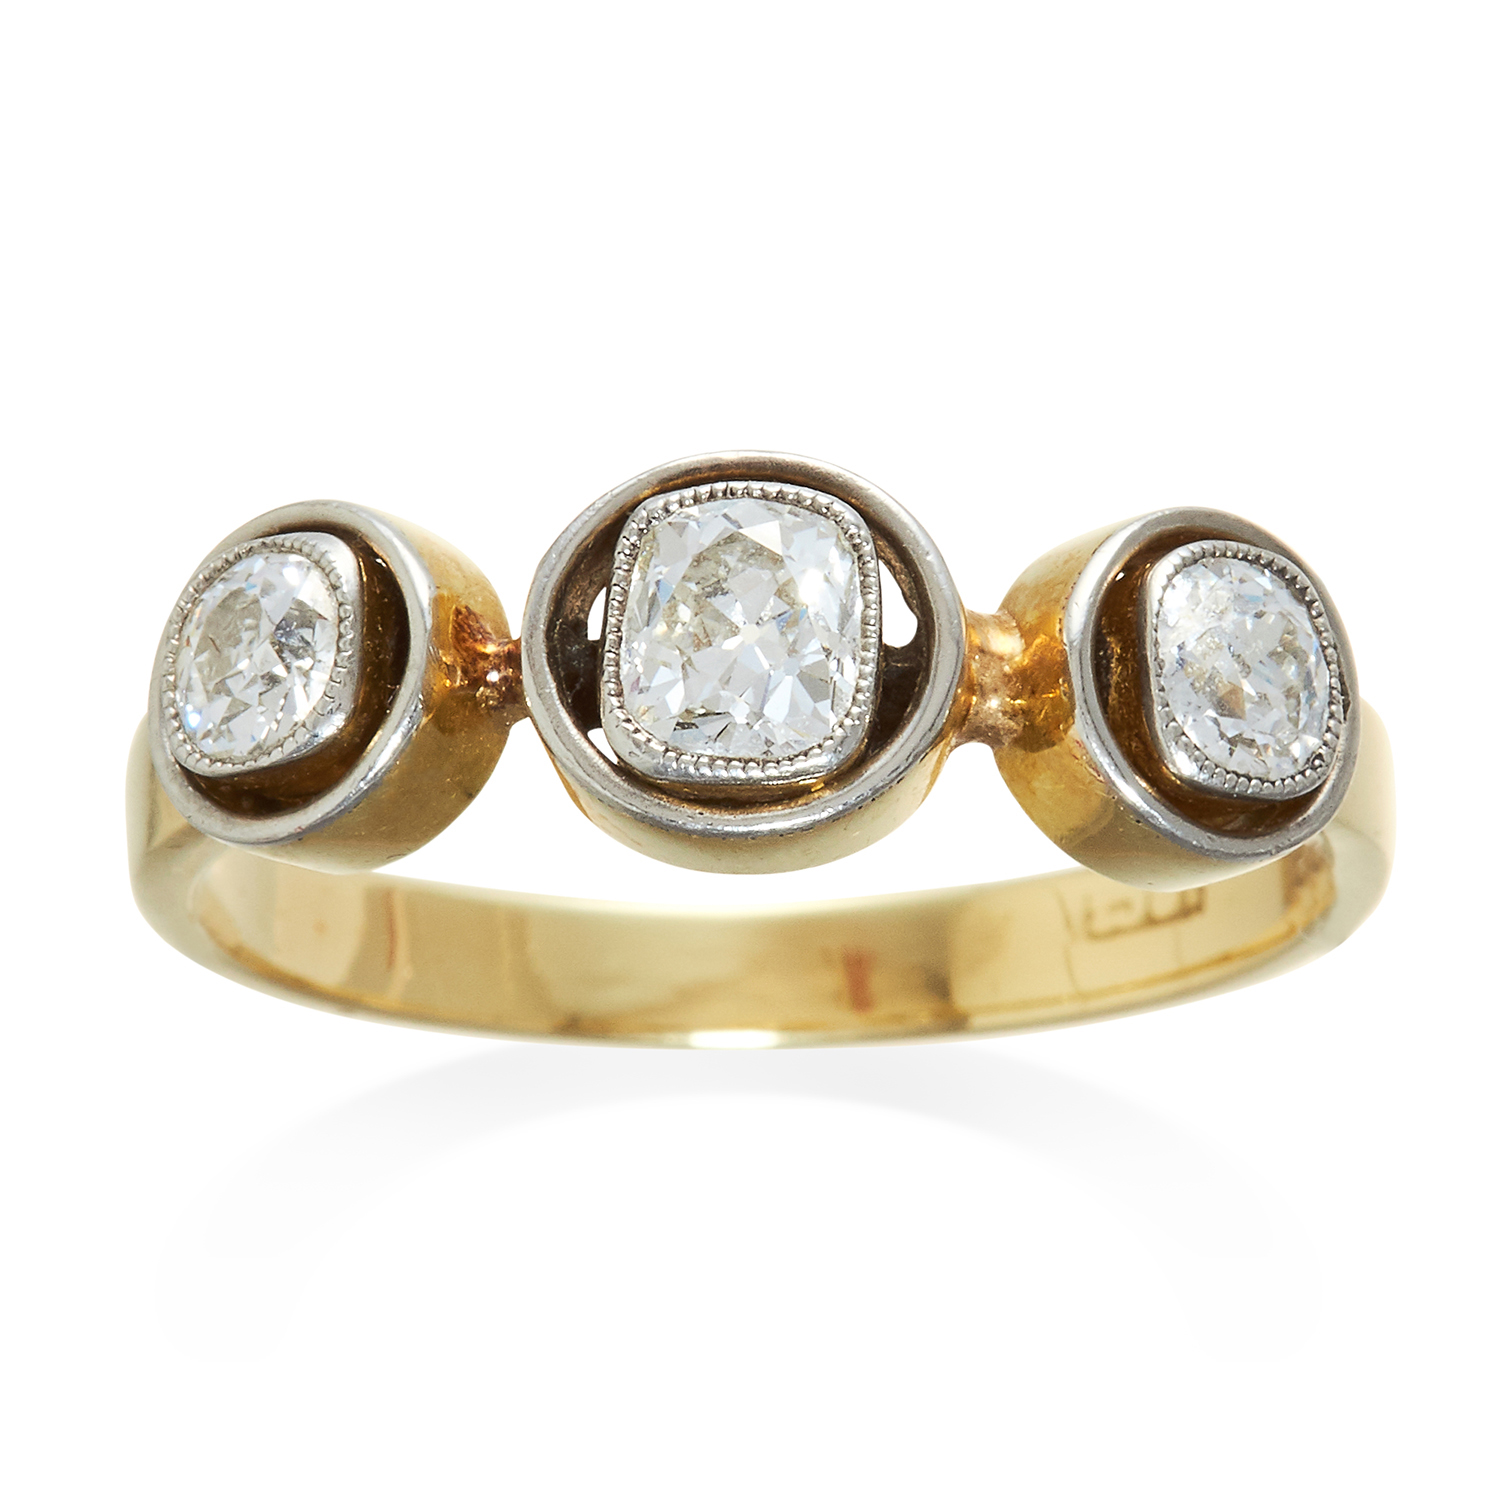 Los 303 - AN ART DECO THREE STONE DIAMOND RING in 18ct yellow gold and platinum, the three old cut diamonds